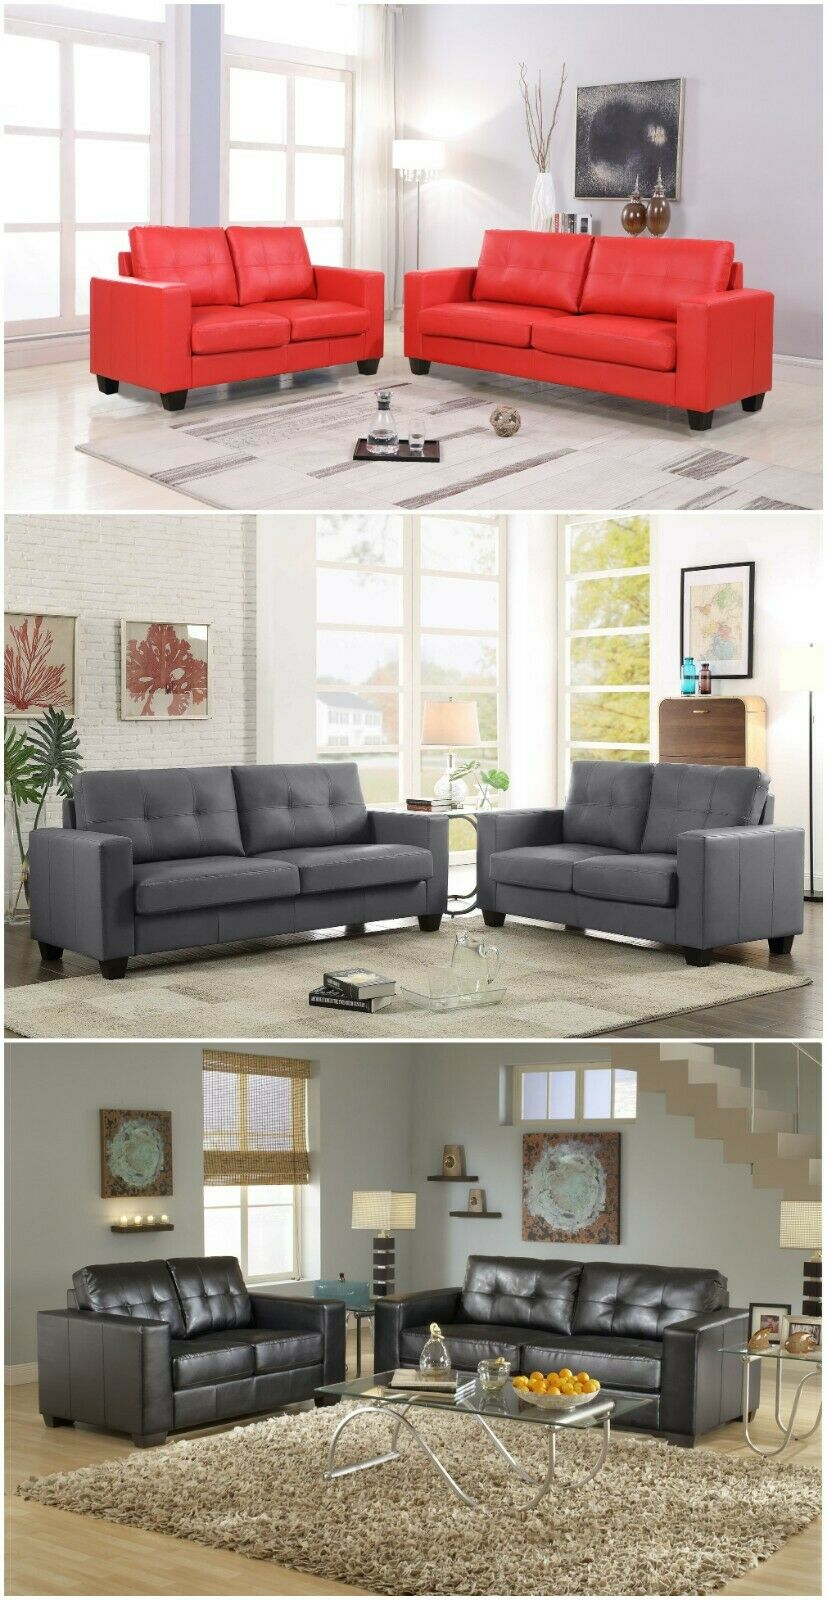 2Pc Contemporary Modern Pu-Leather Sofa and Loveseat Living